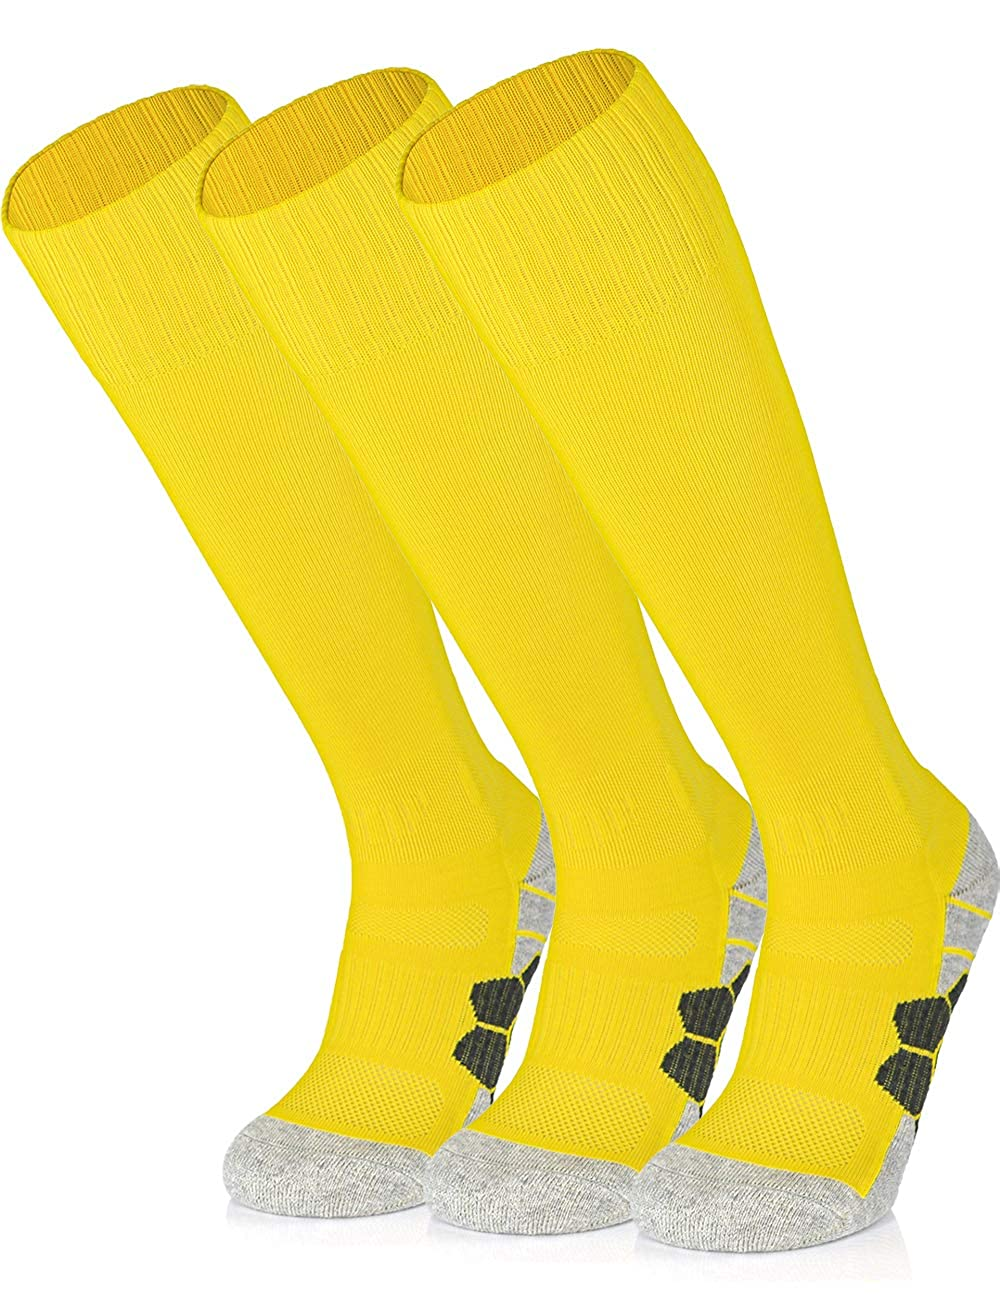 APTESOL Youth Soccer Socks for Kids Adult Knee High Team Sport Boys Girls Combed Cotton Bottom Tube Socks